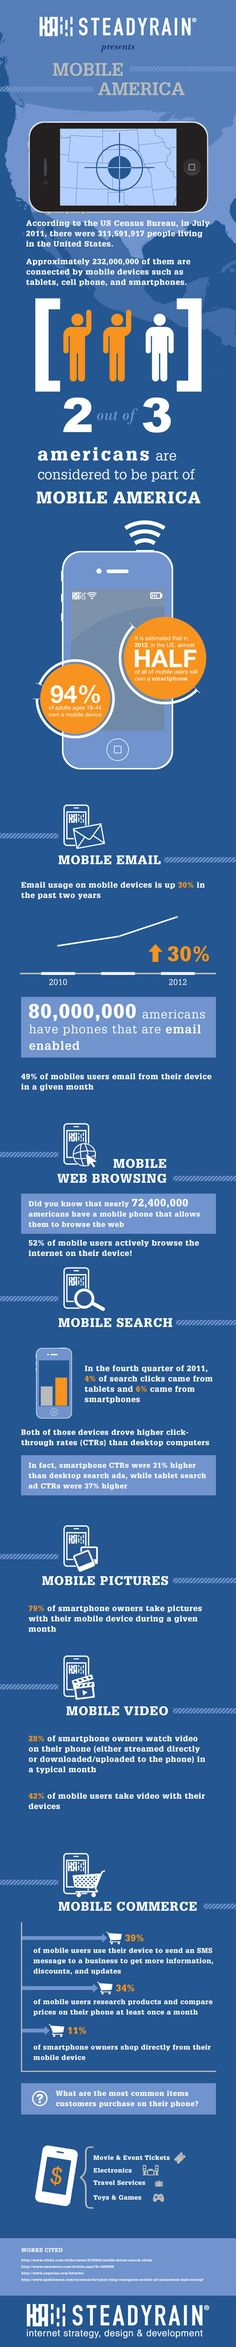 Handy infographic re: mobile phone use in the U.S.  94% of adults now own a mobile device, nearly half smartphones,